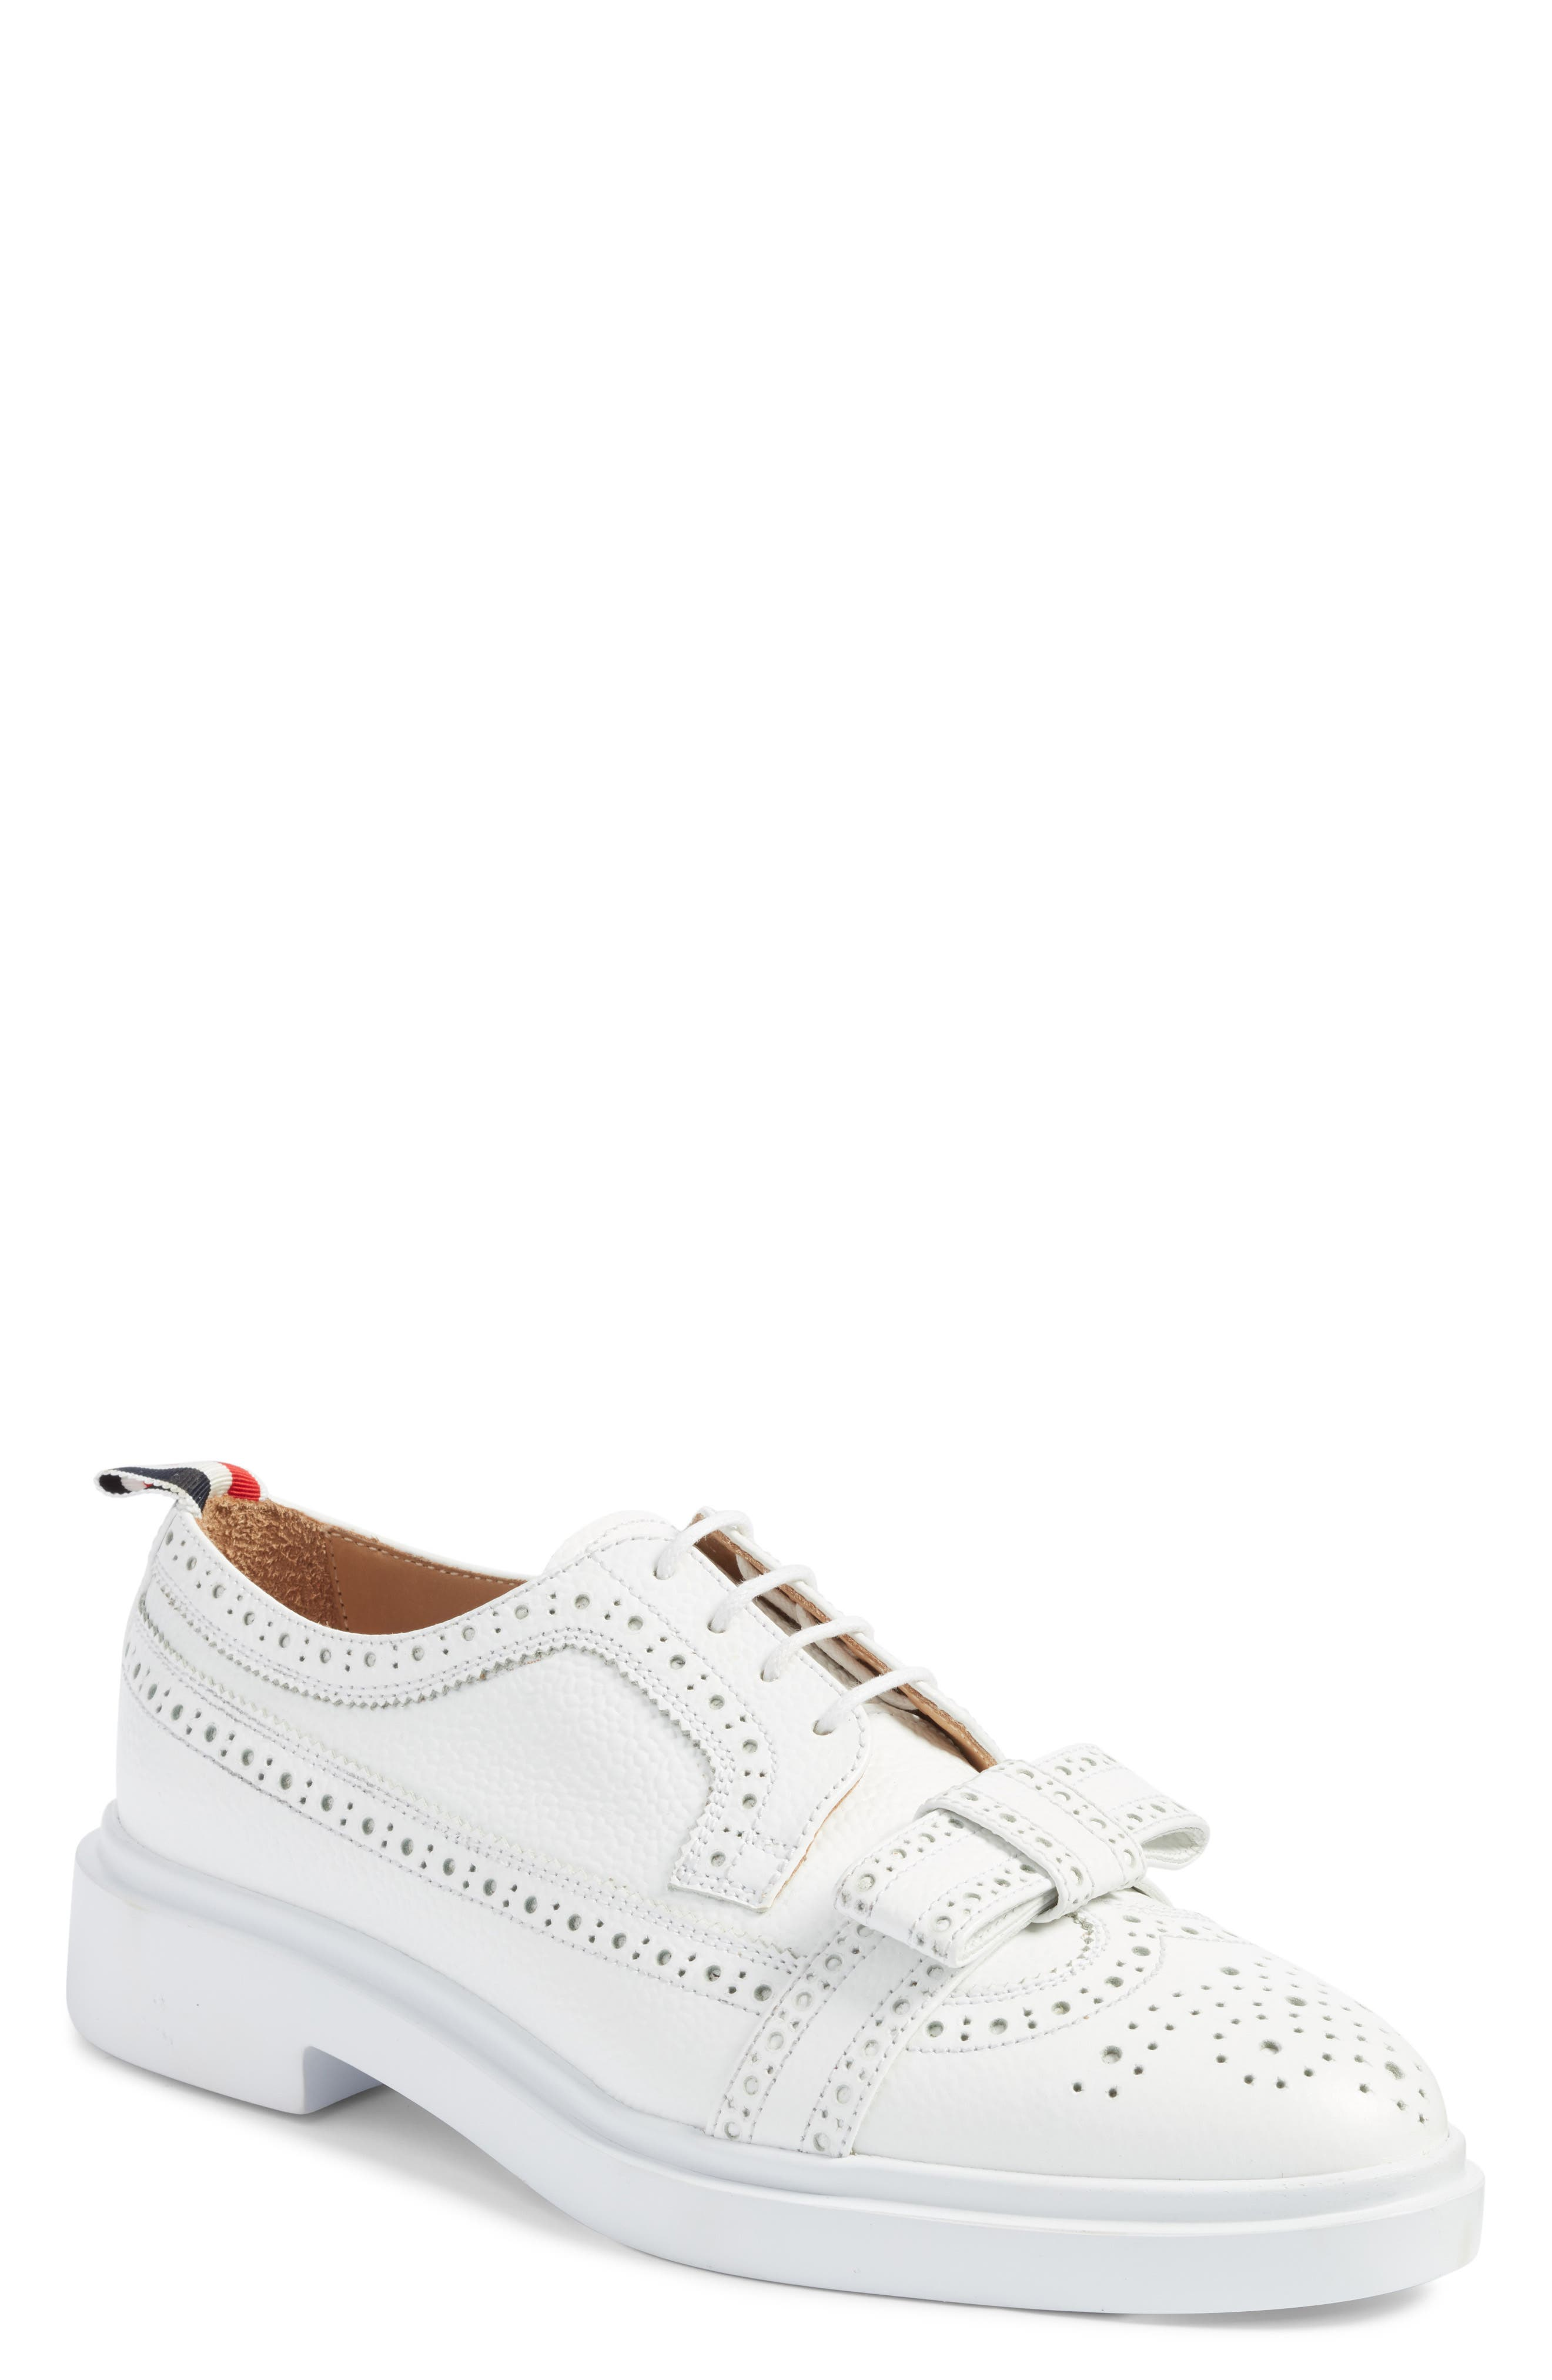 Thom Browne Bow Brogued Oxford, White